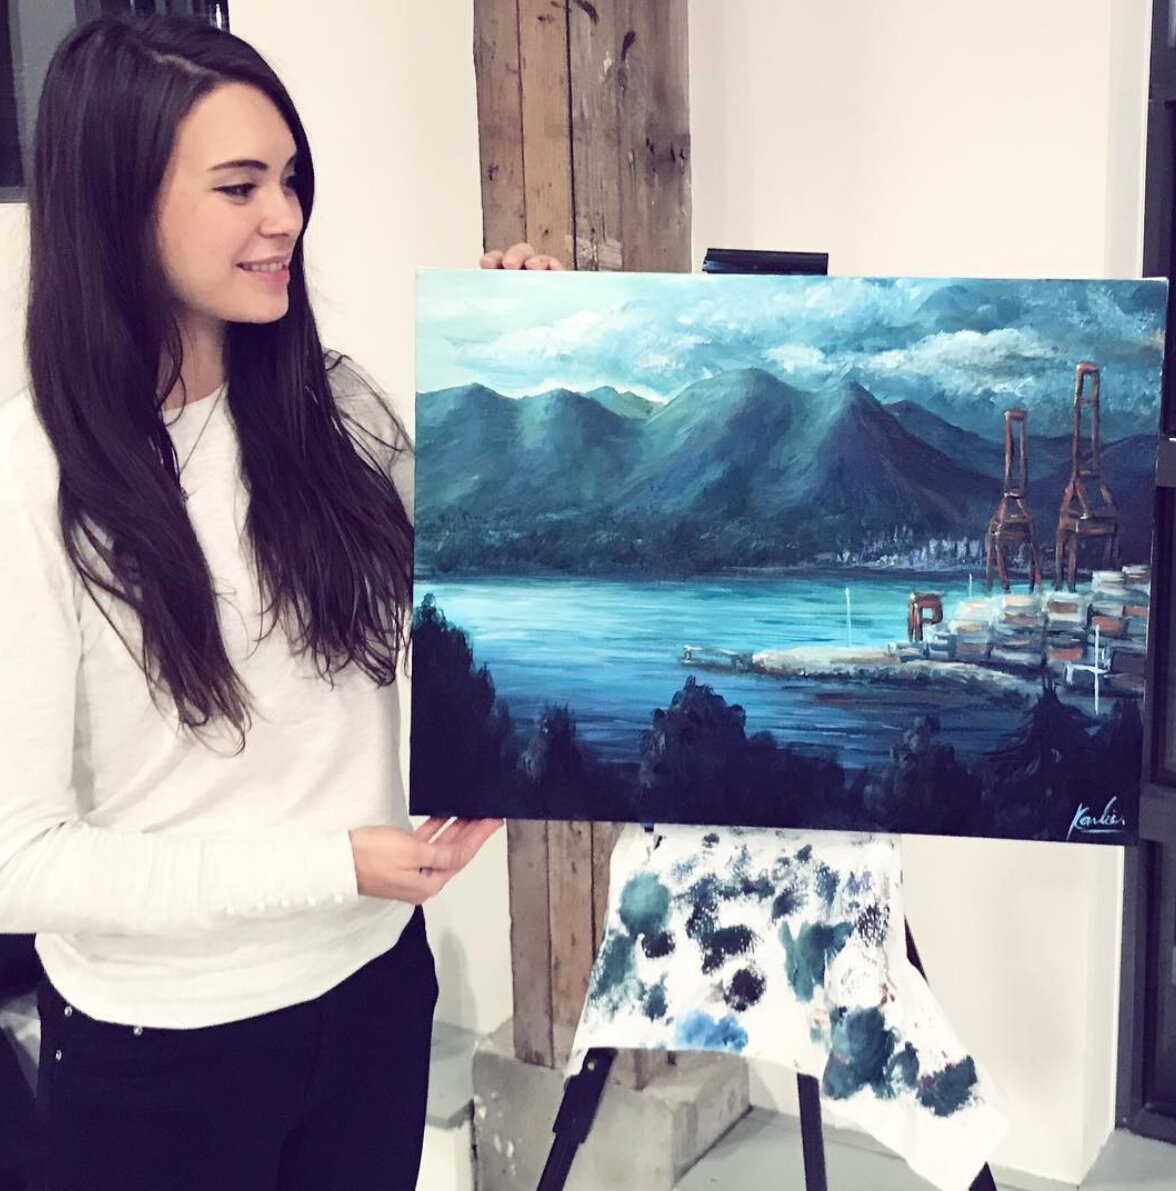 Karlie Carpentier Rosin paints many landscapes, among other subjects, and here she is after painting live at an event for 2h with acrylics on canvas. Gastown views of North Vancouver